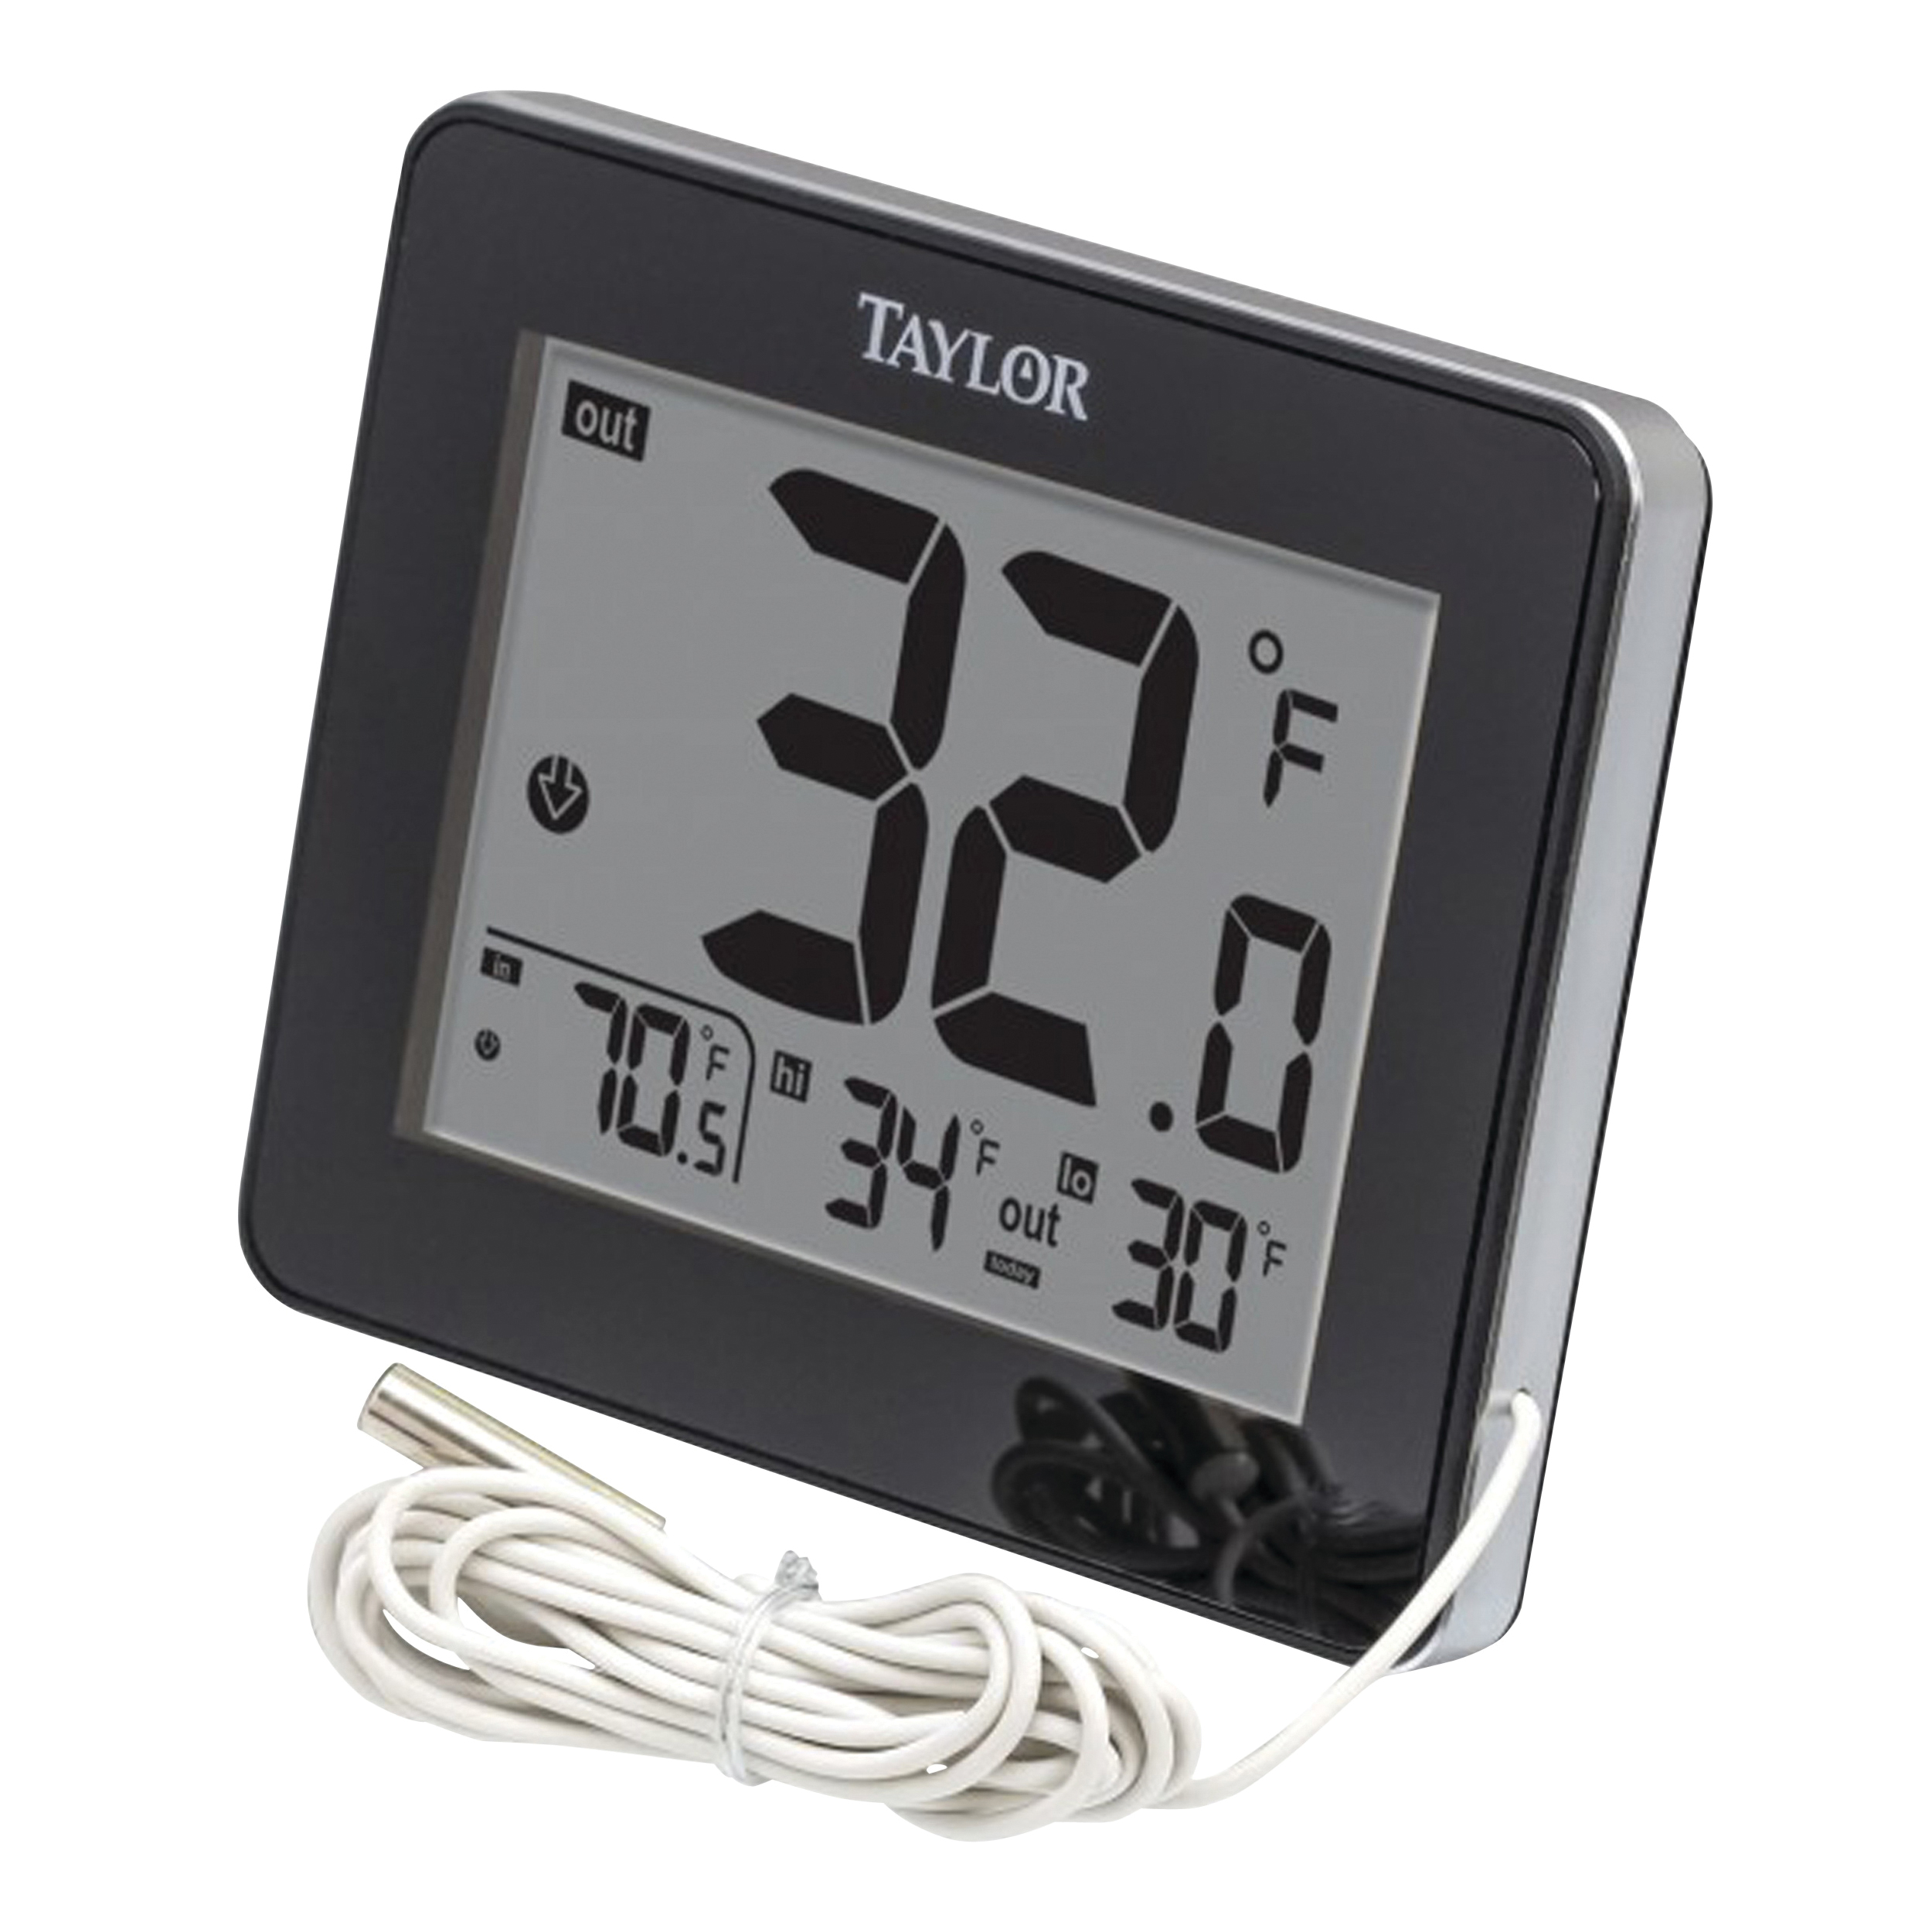 Picture of Taylor 1710 Thermometer, 2.94 in W x 2.13 in H Display, Plastic Casing